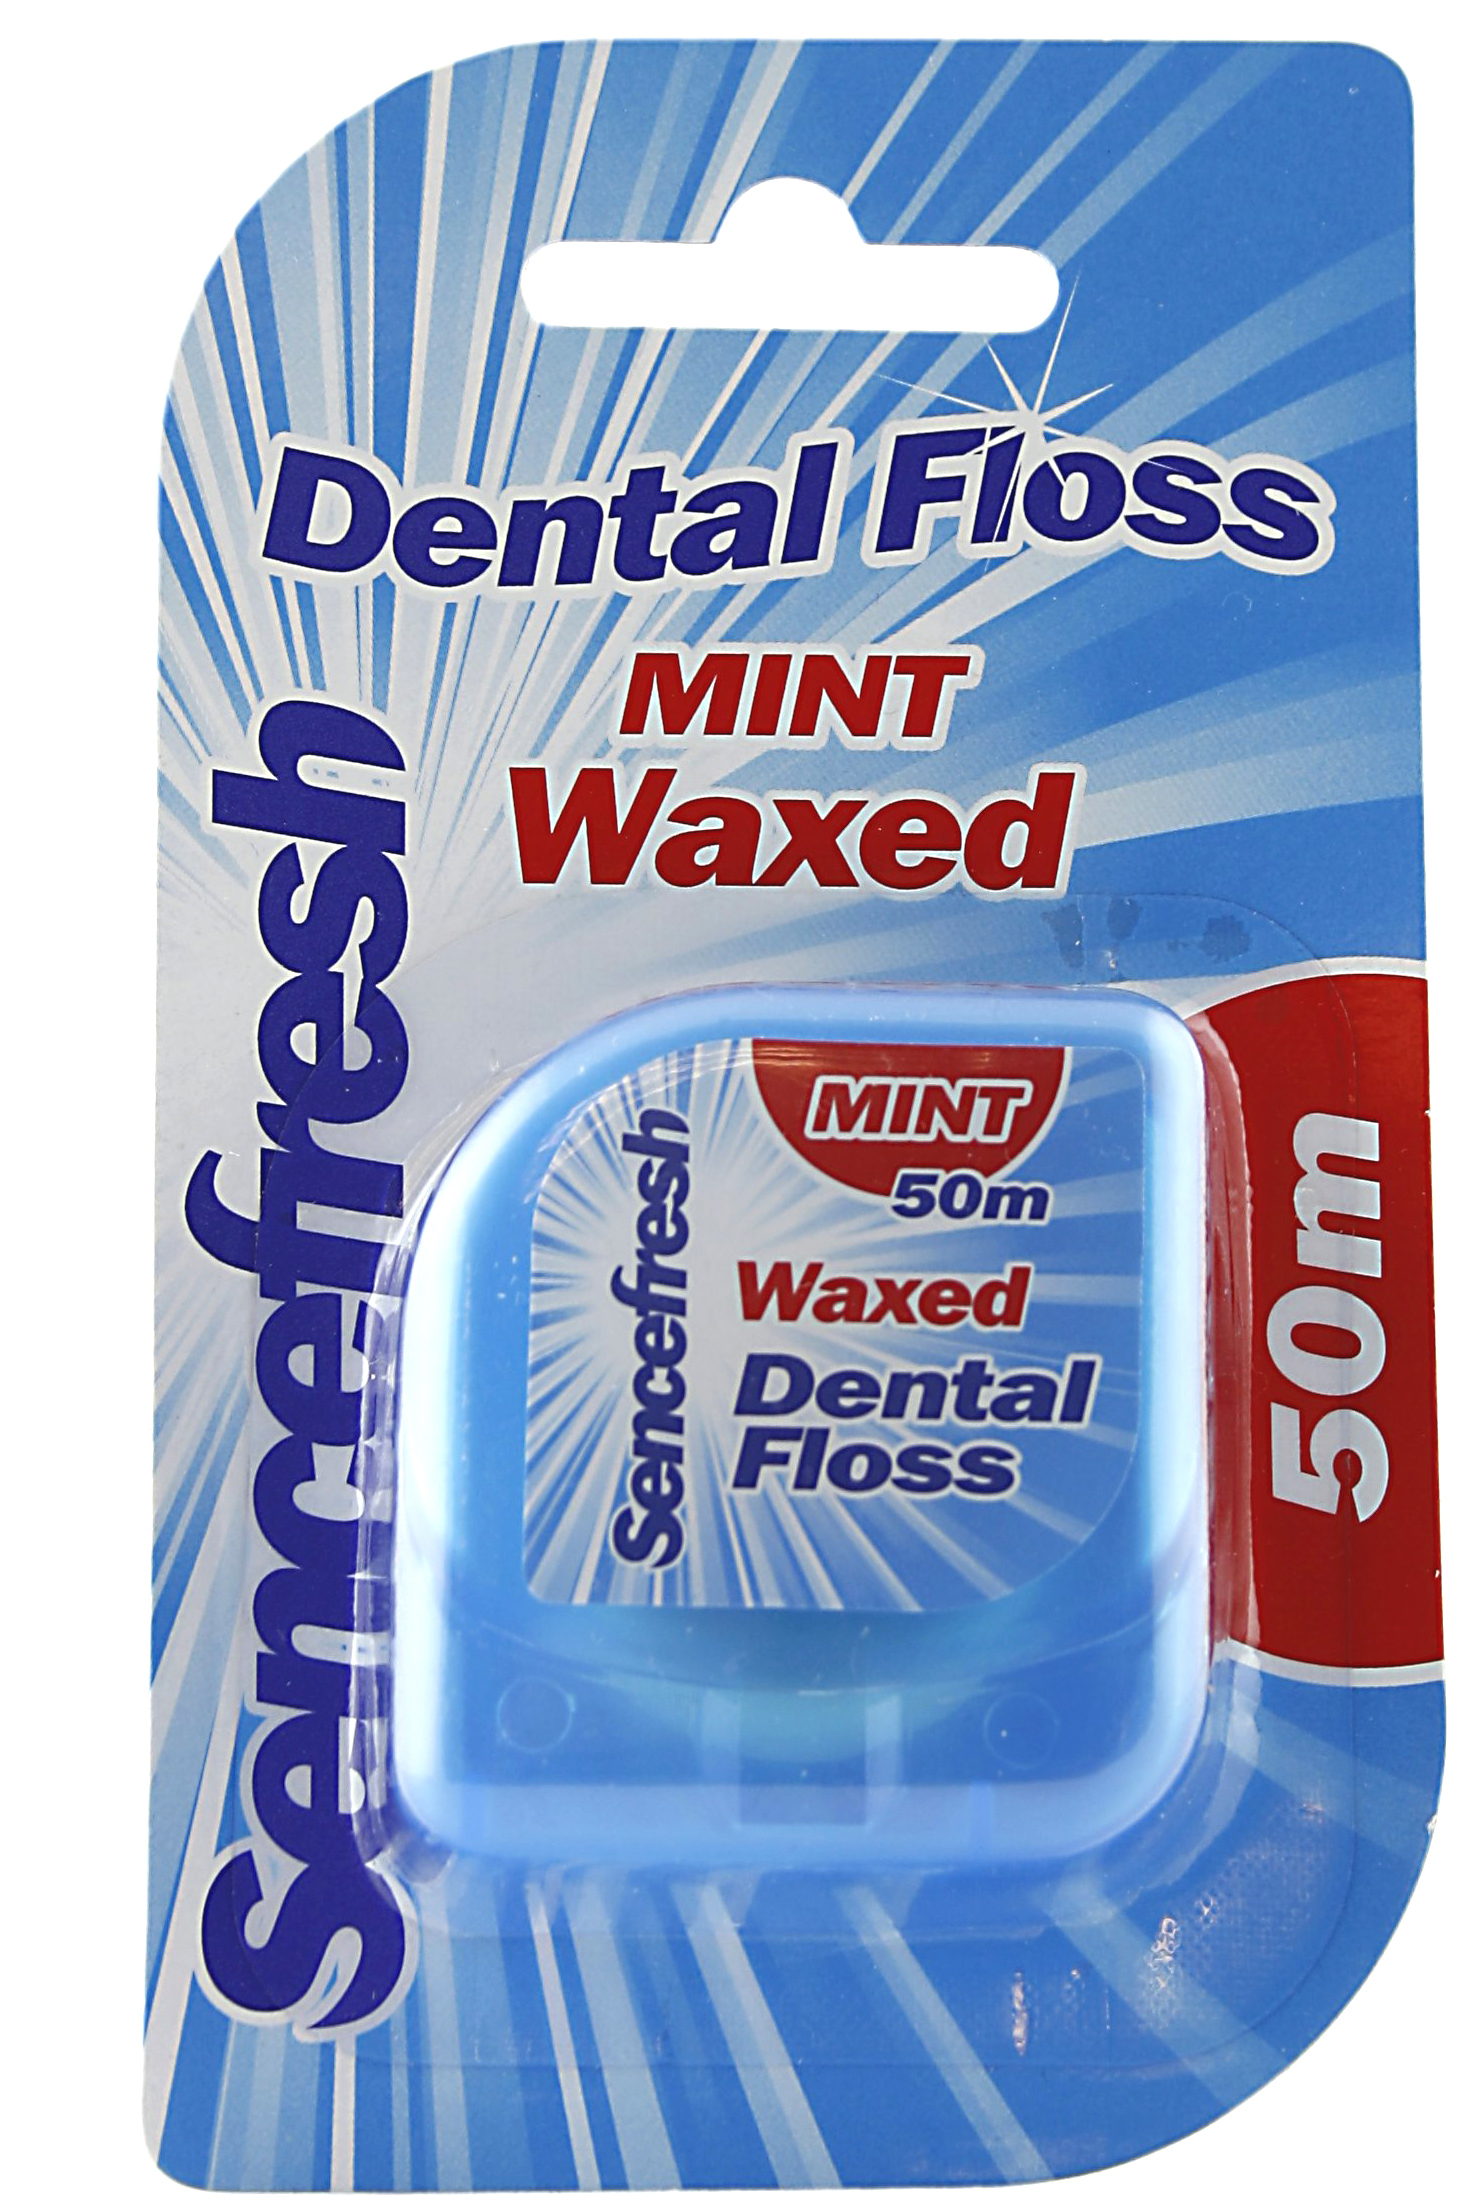 01718 - waxed dental floss mint, 50 m